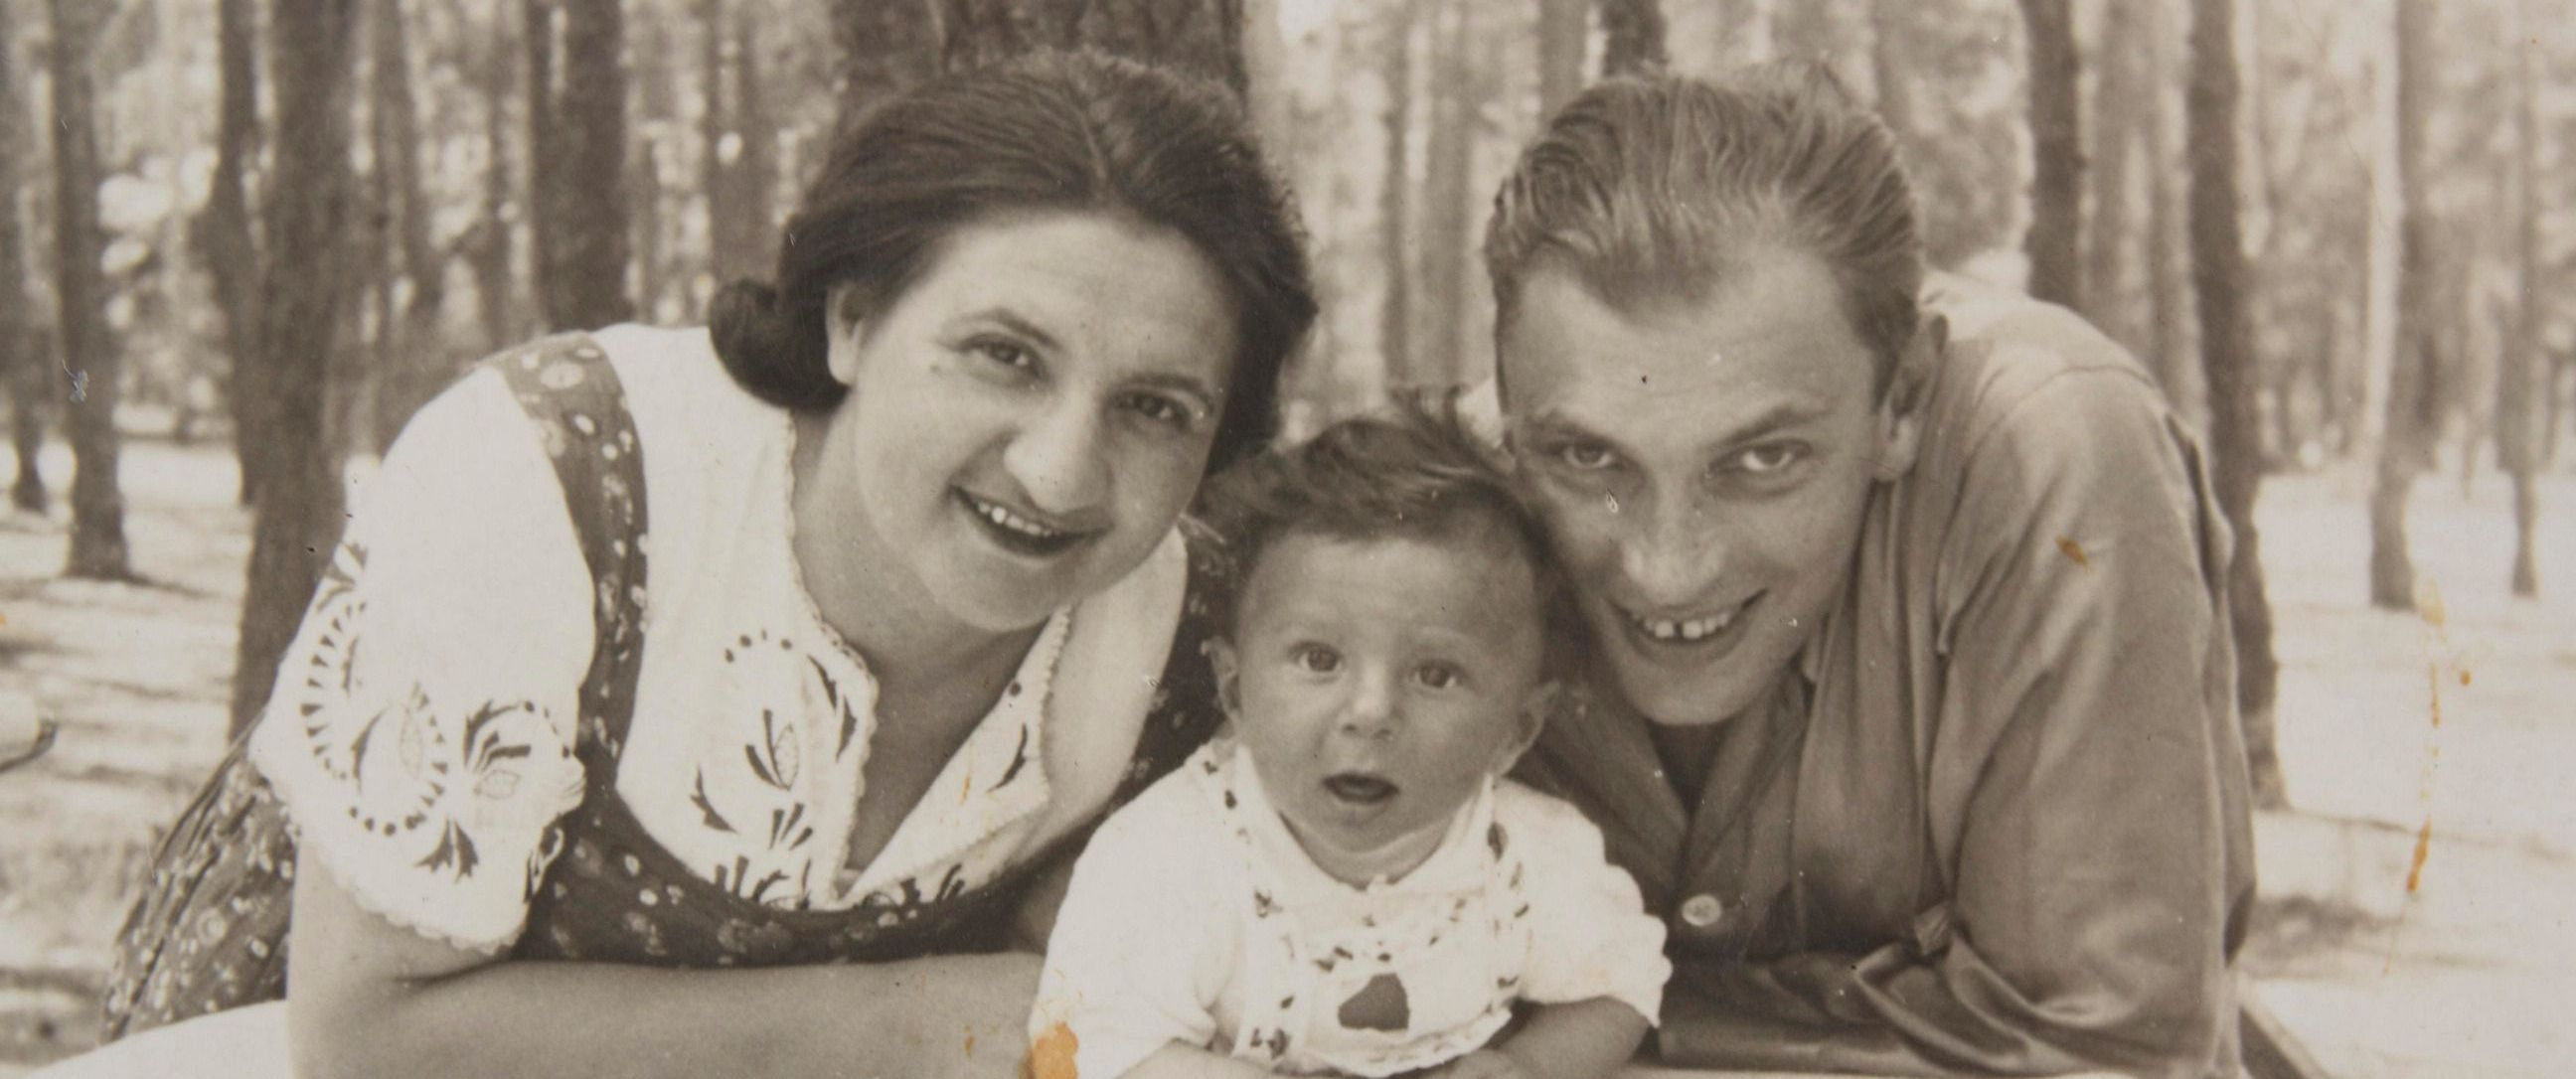 Michael Hochberg as a baby with his parents.